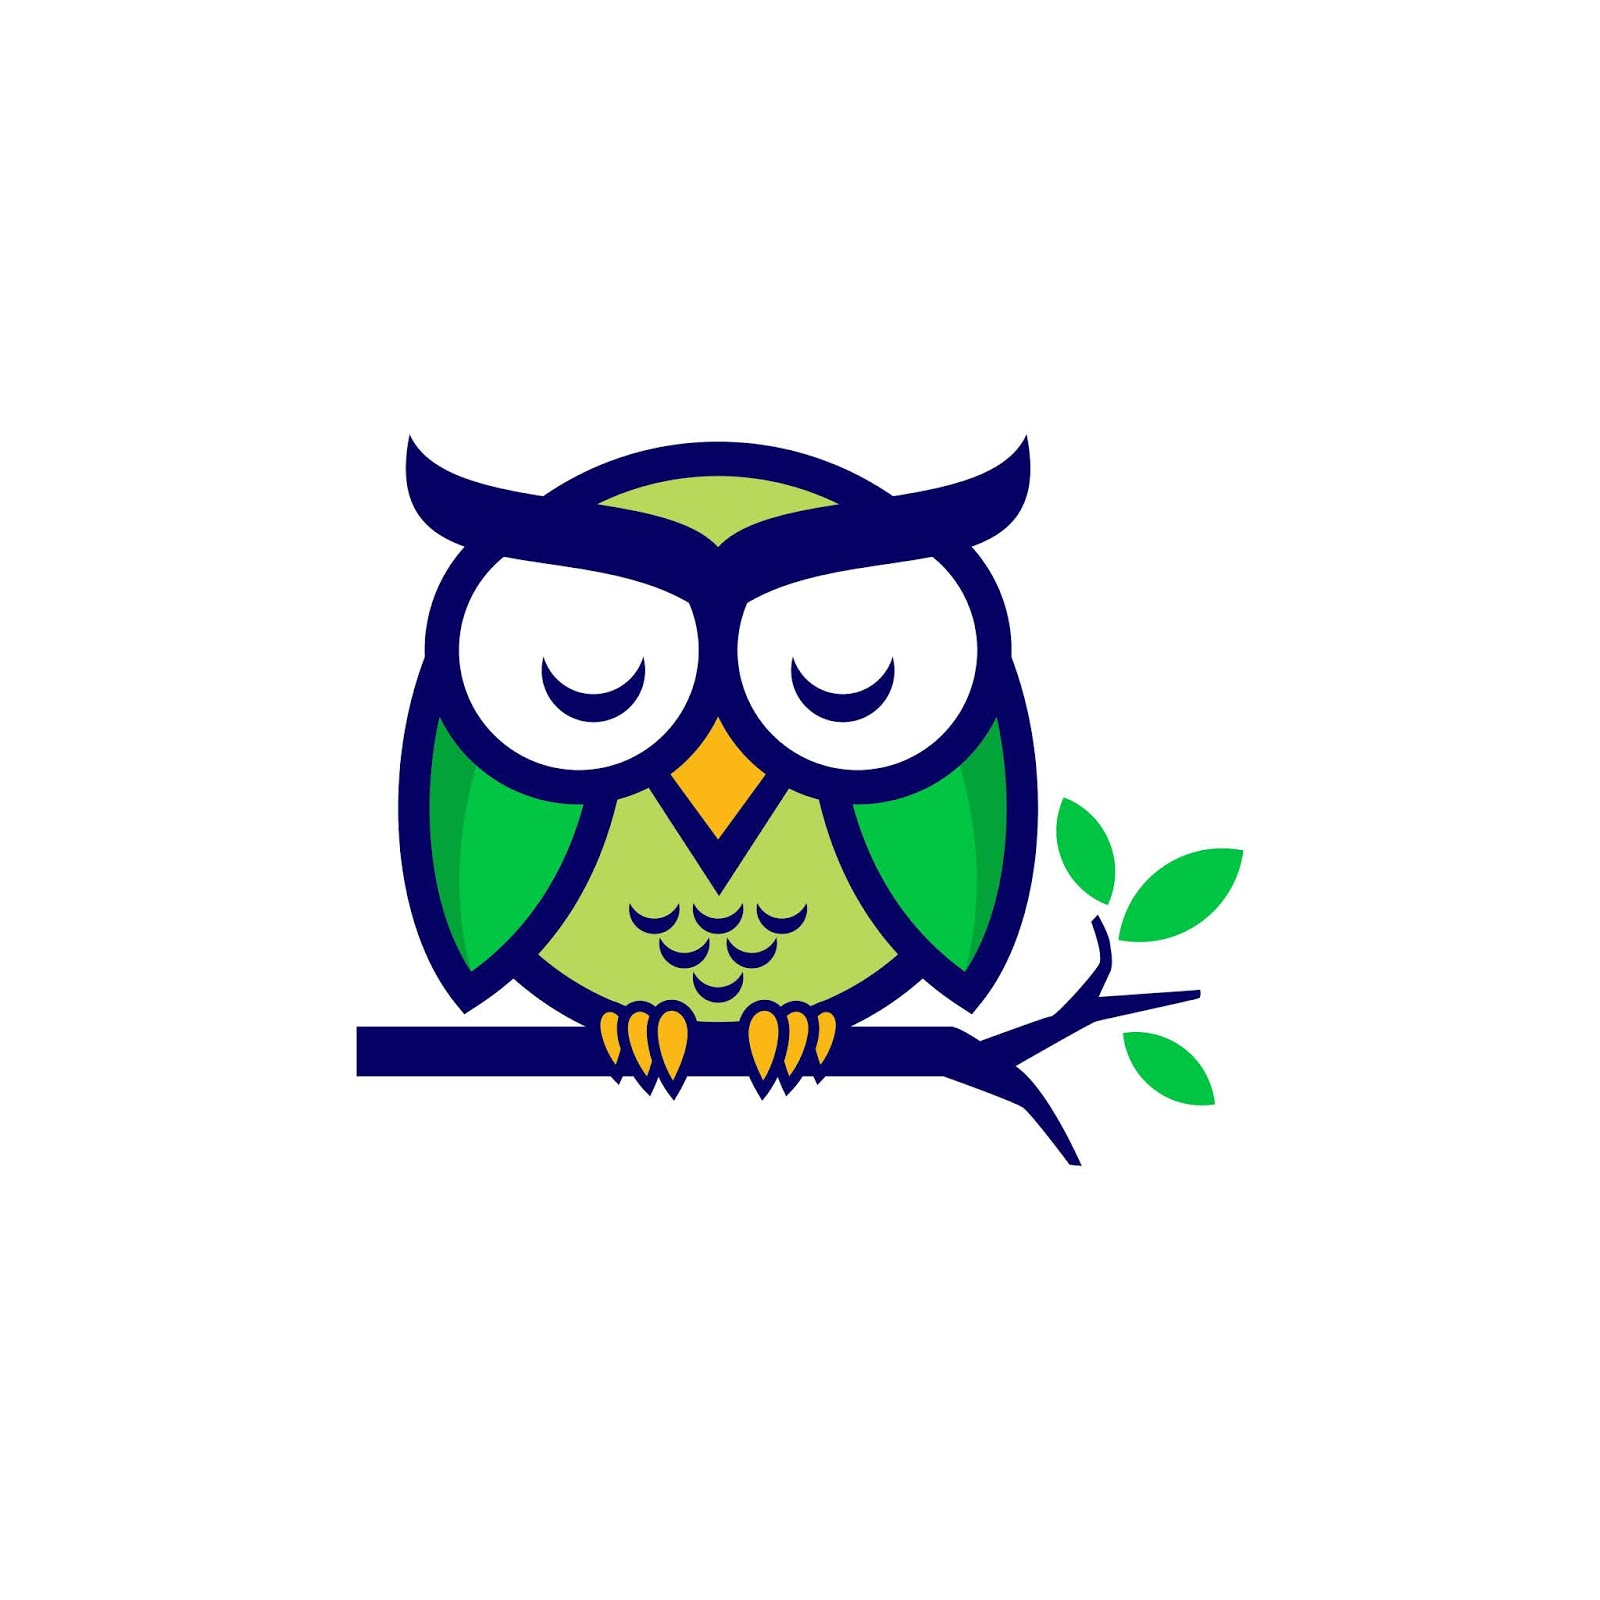 Owl Sleeping Vector Design Free Download Vector CDR, AI, EPS and PNG Formats